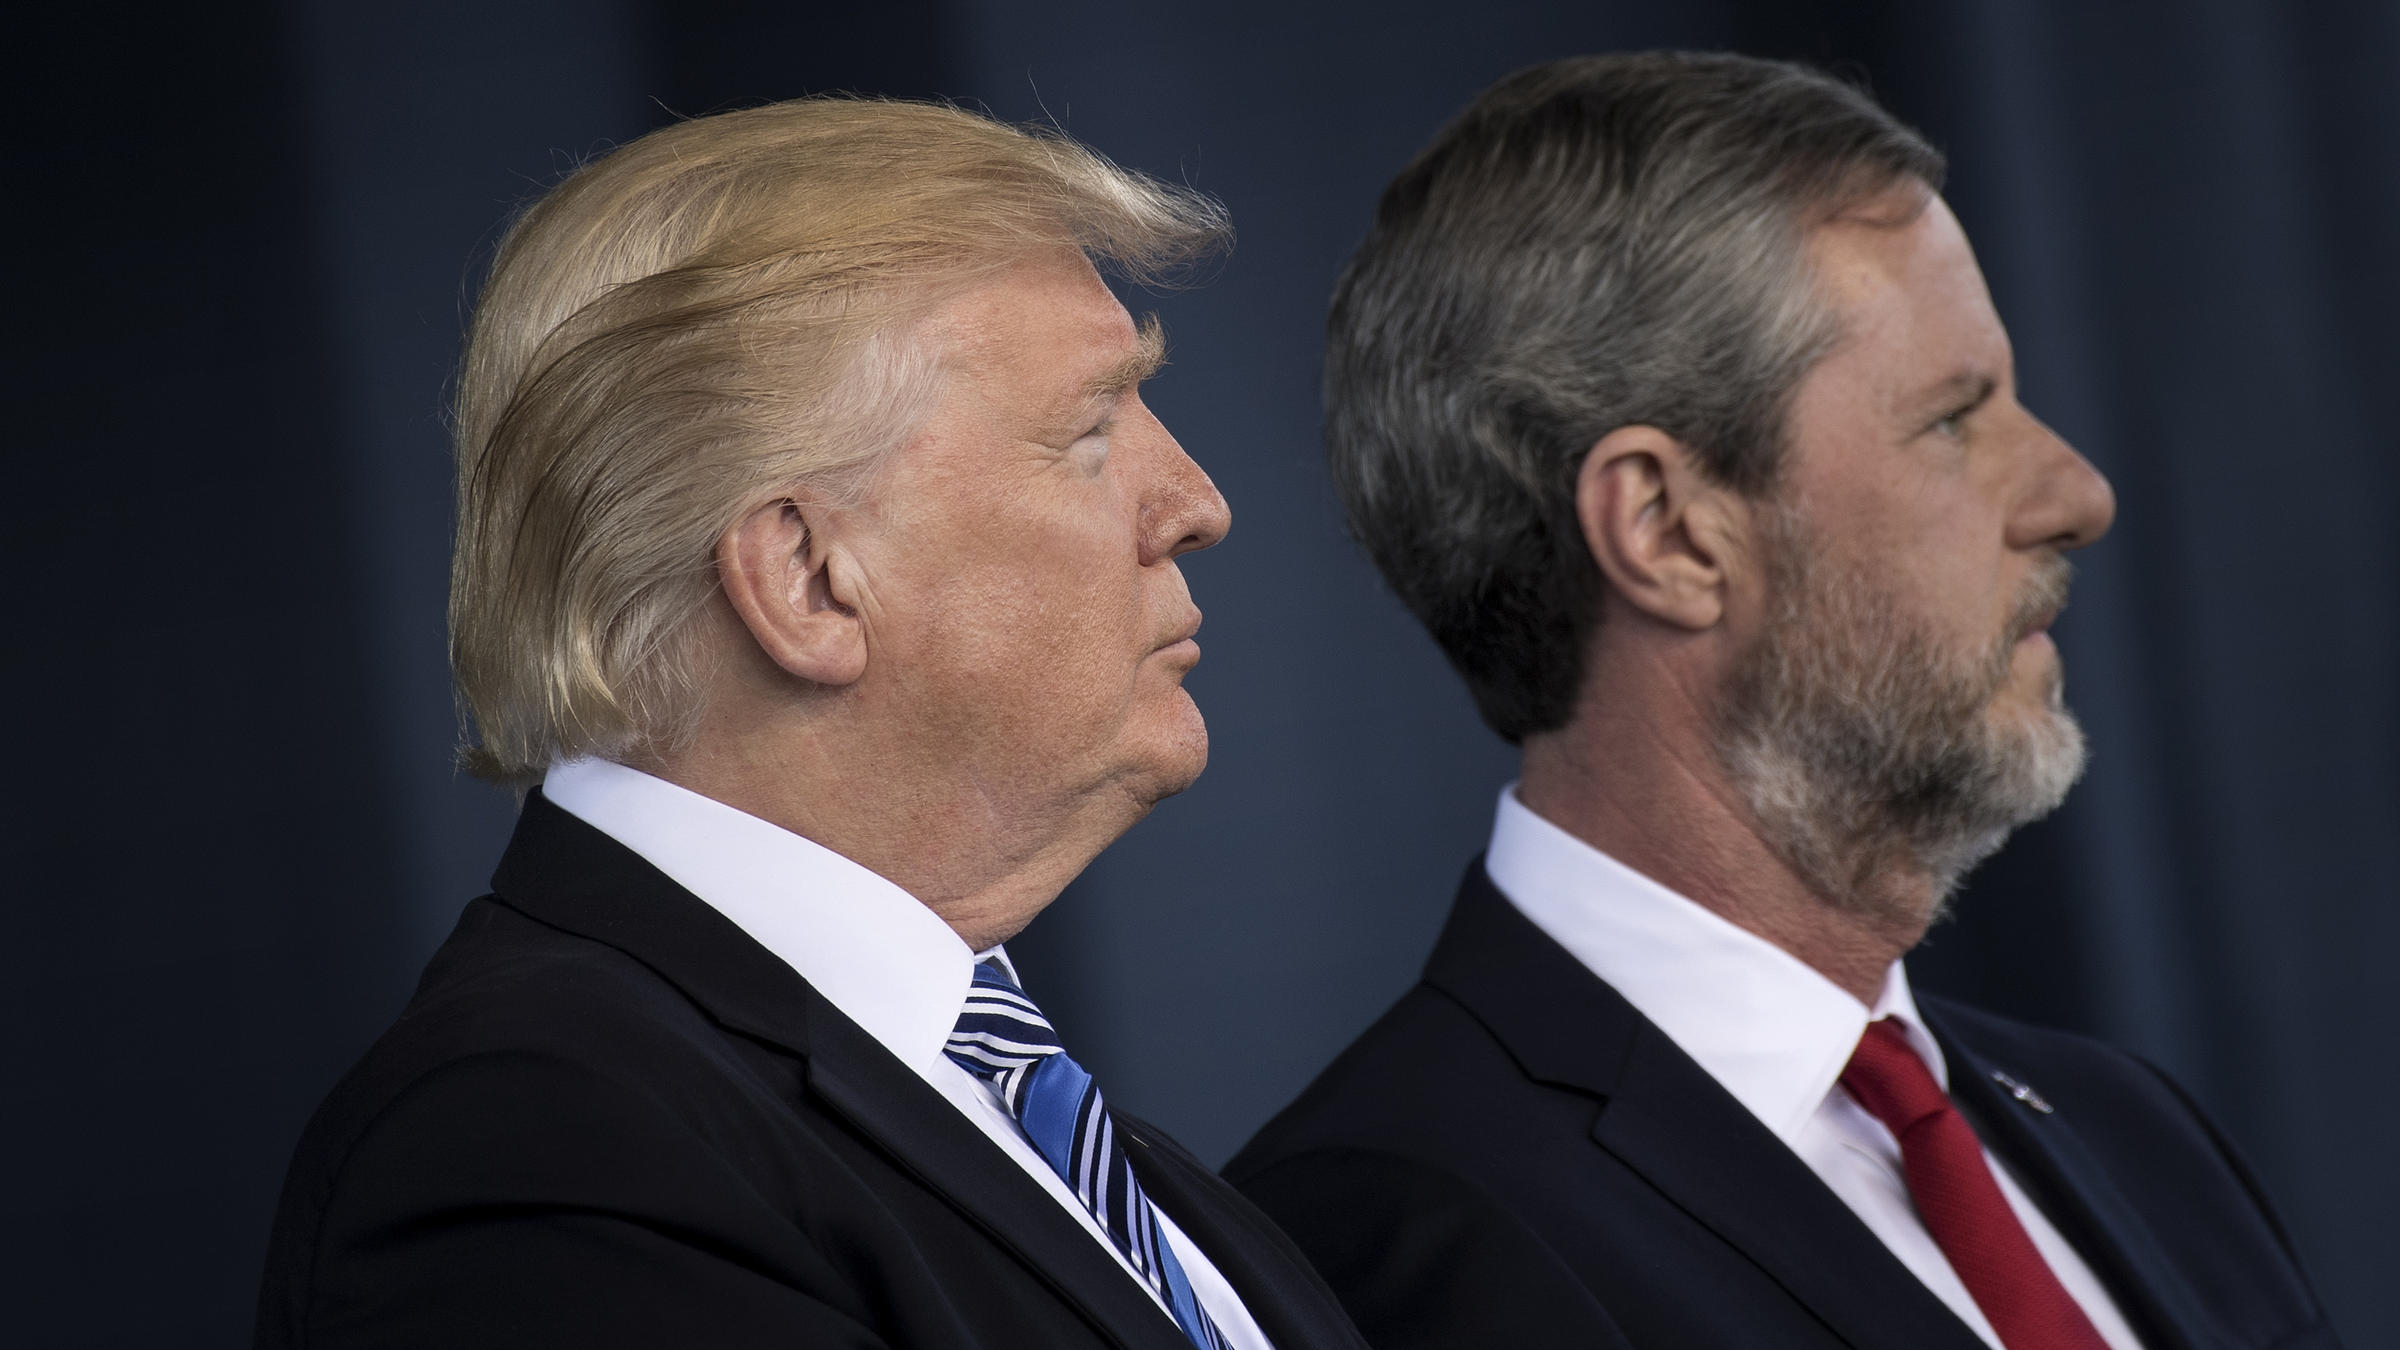 Jerry Falwell Jr: Trump 'left door open' to calling Charlottesville attack terrorism